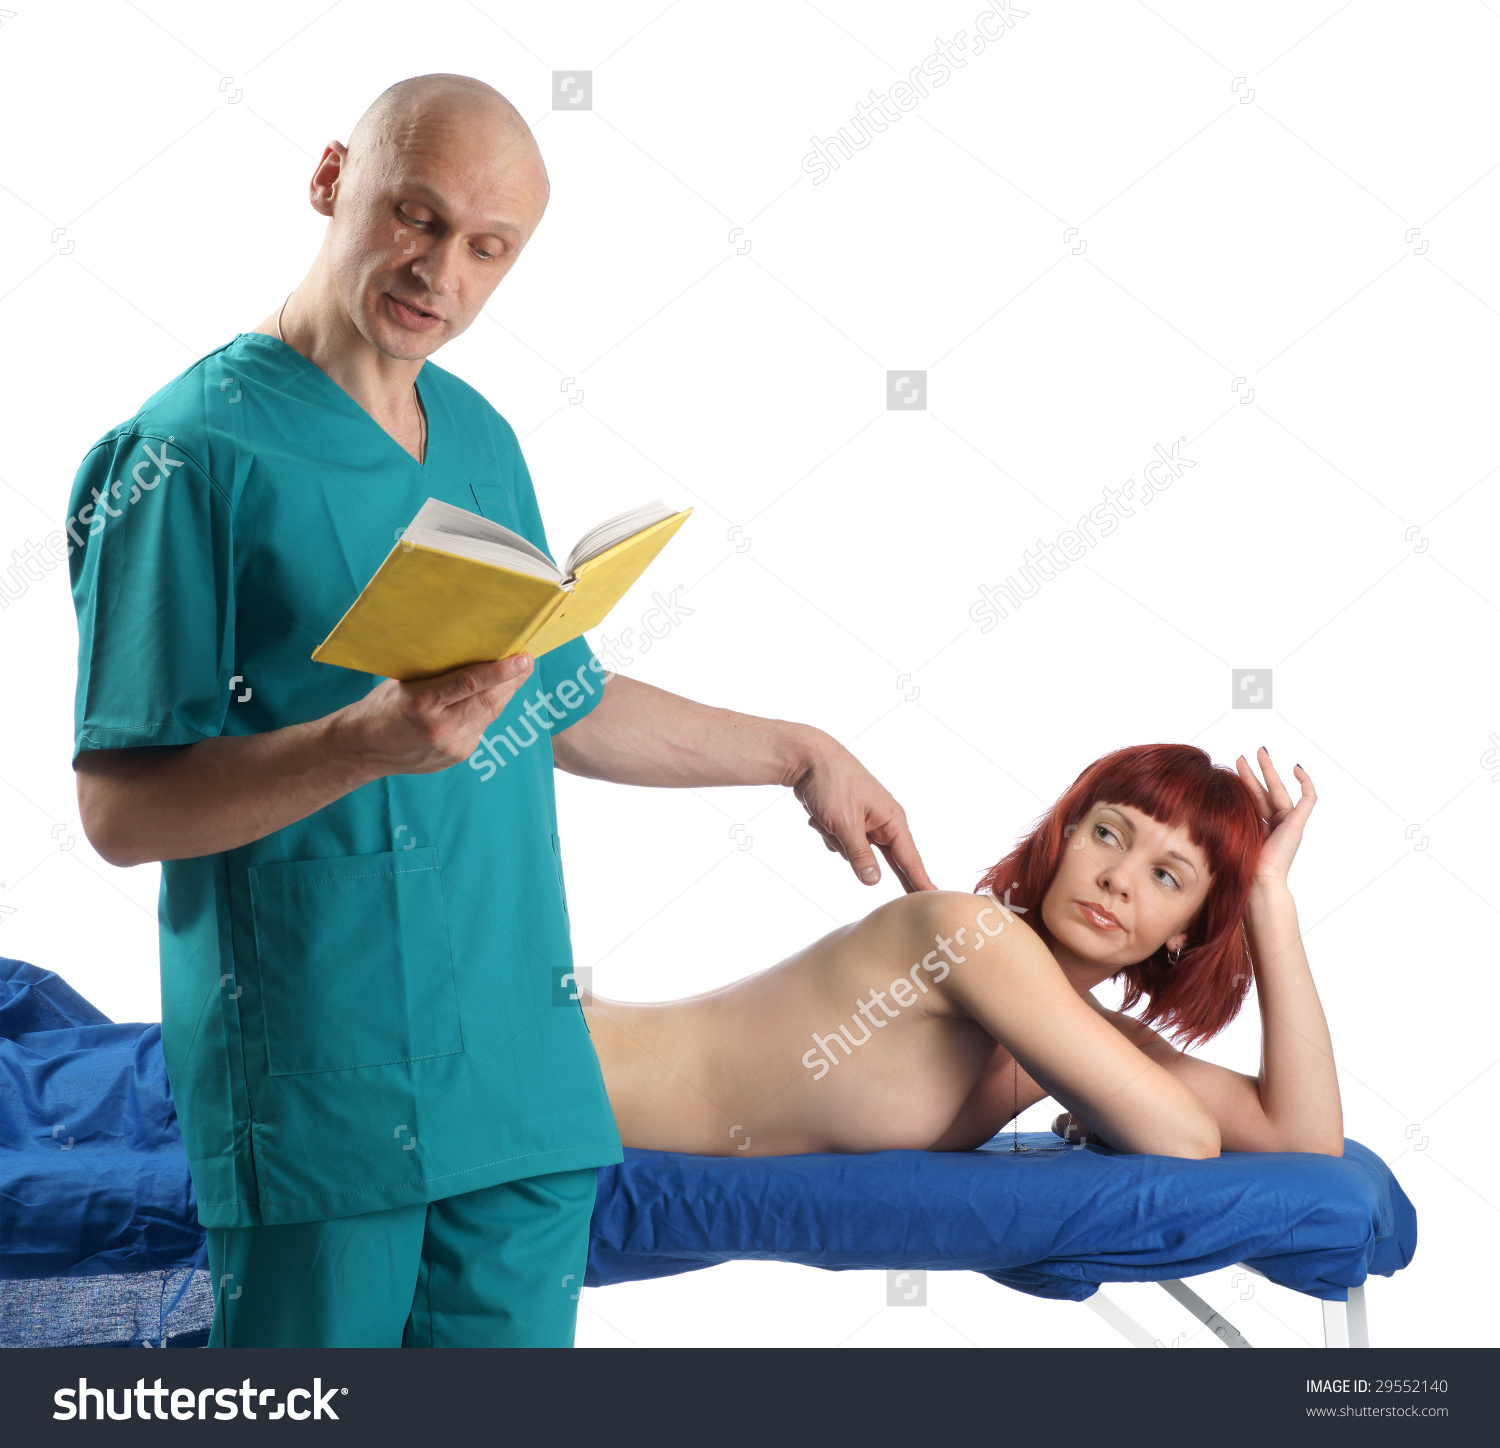 stock-photo-scene-with-massage-therapist-and-his-angry-client-isolated-on-white-29552140